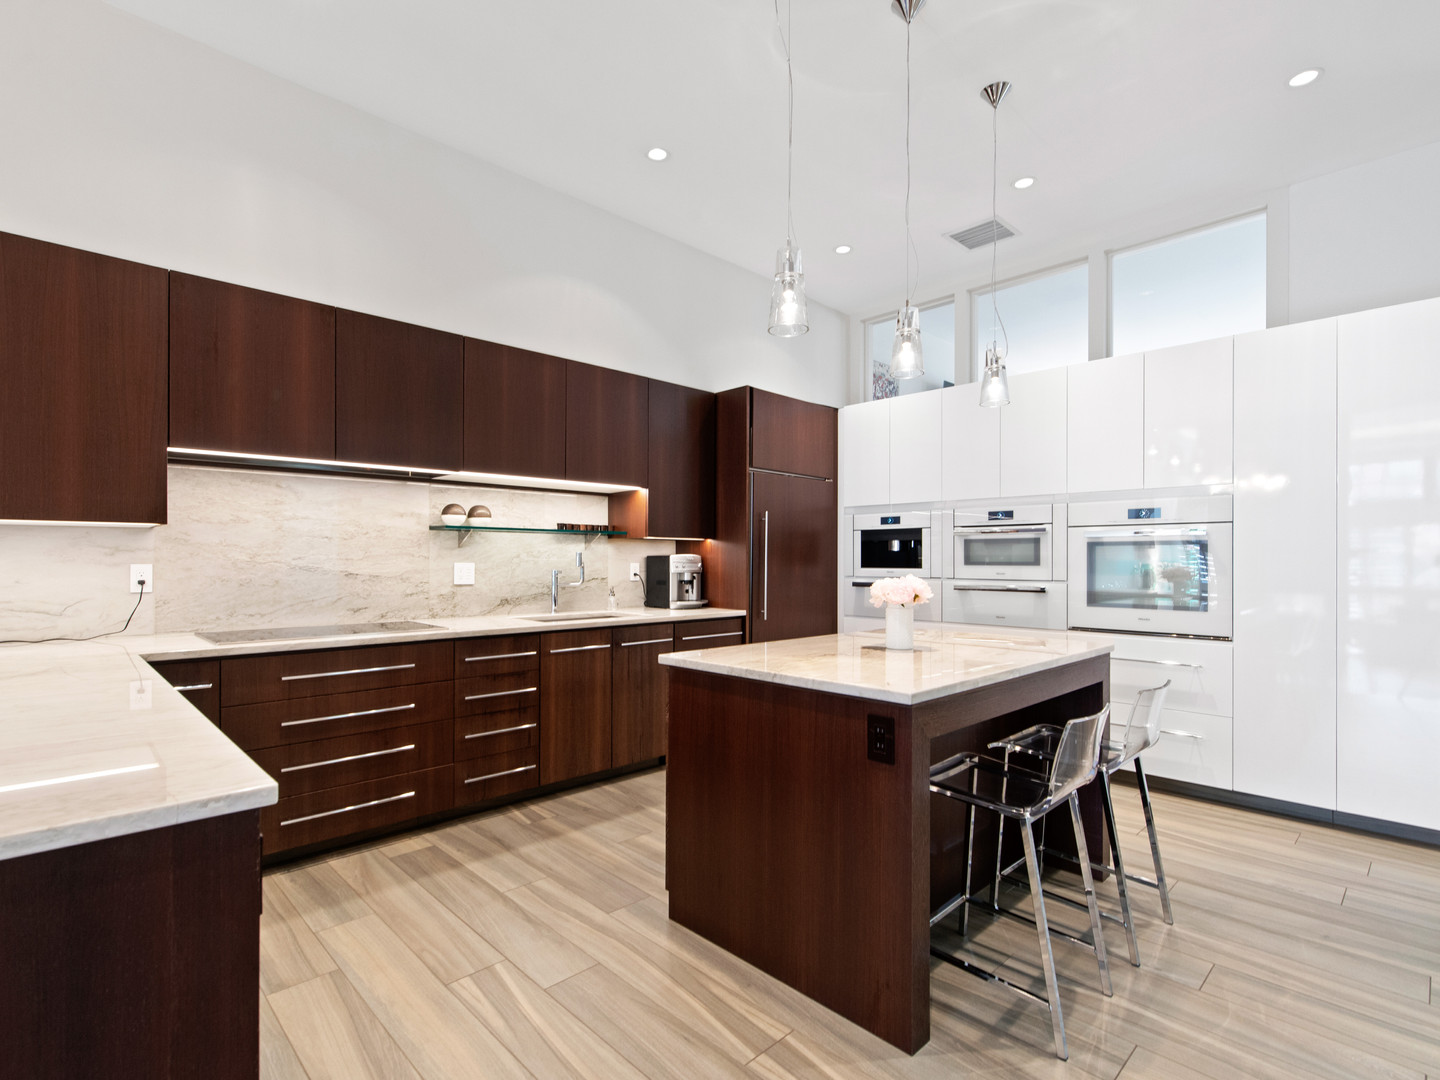 621 NW 11th Ave-9.jpg